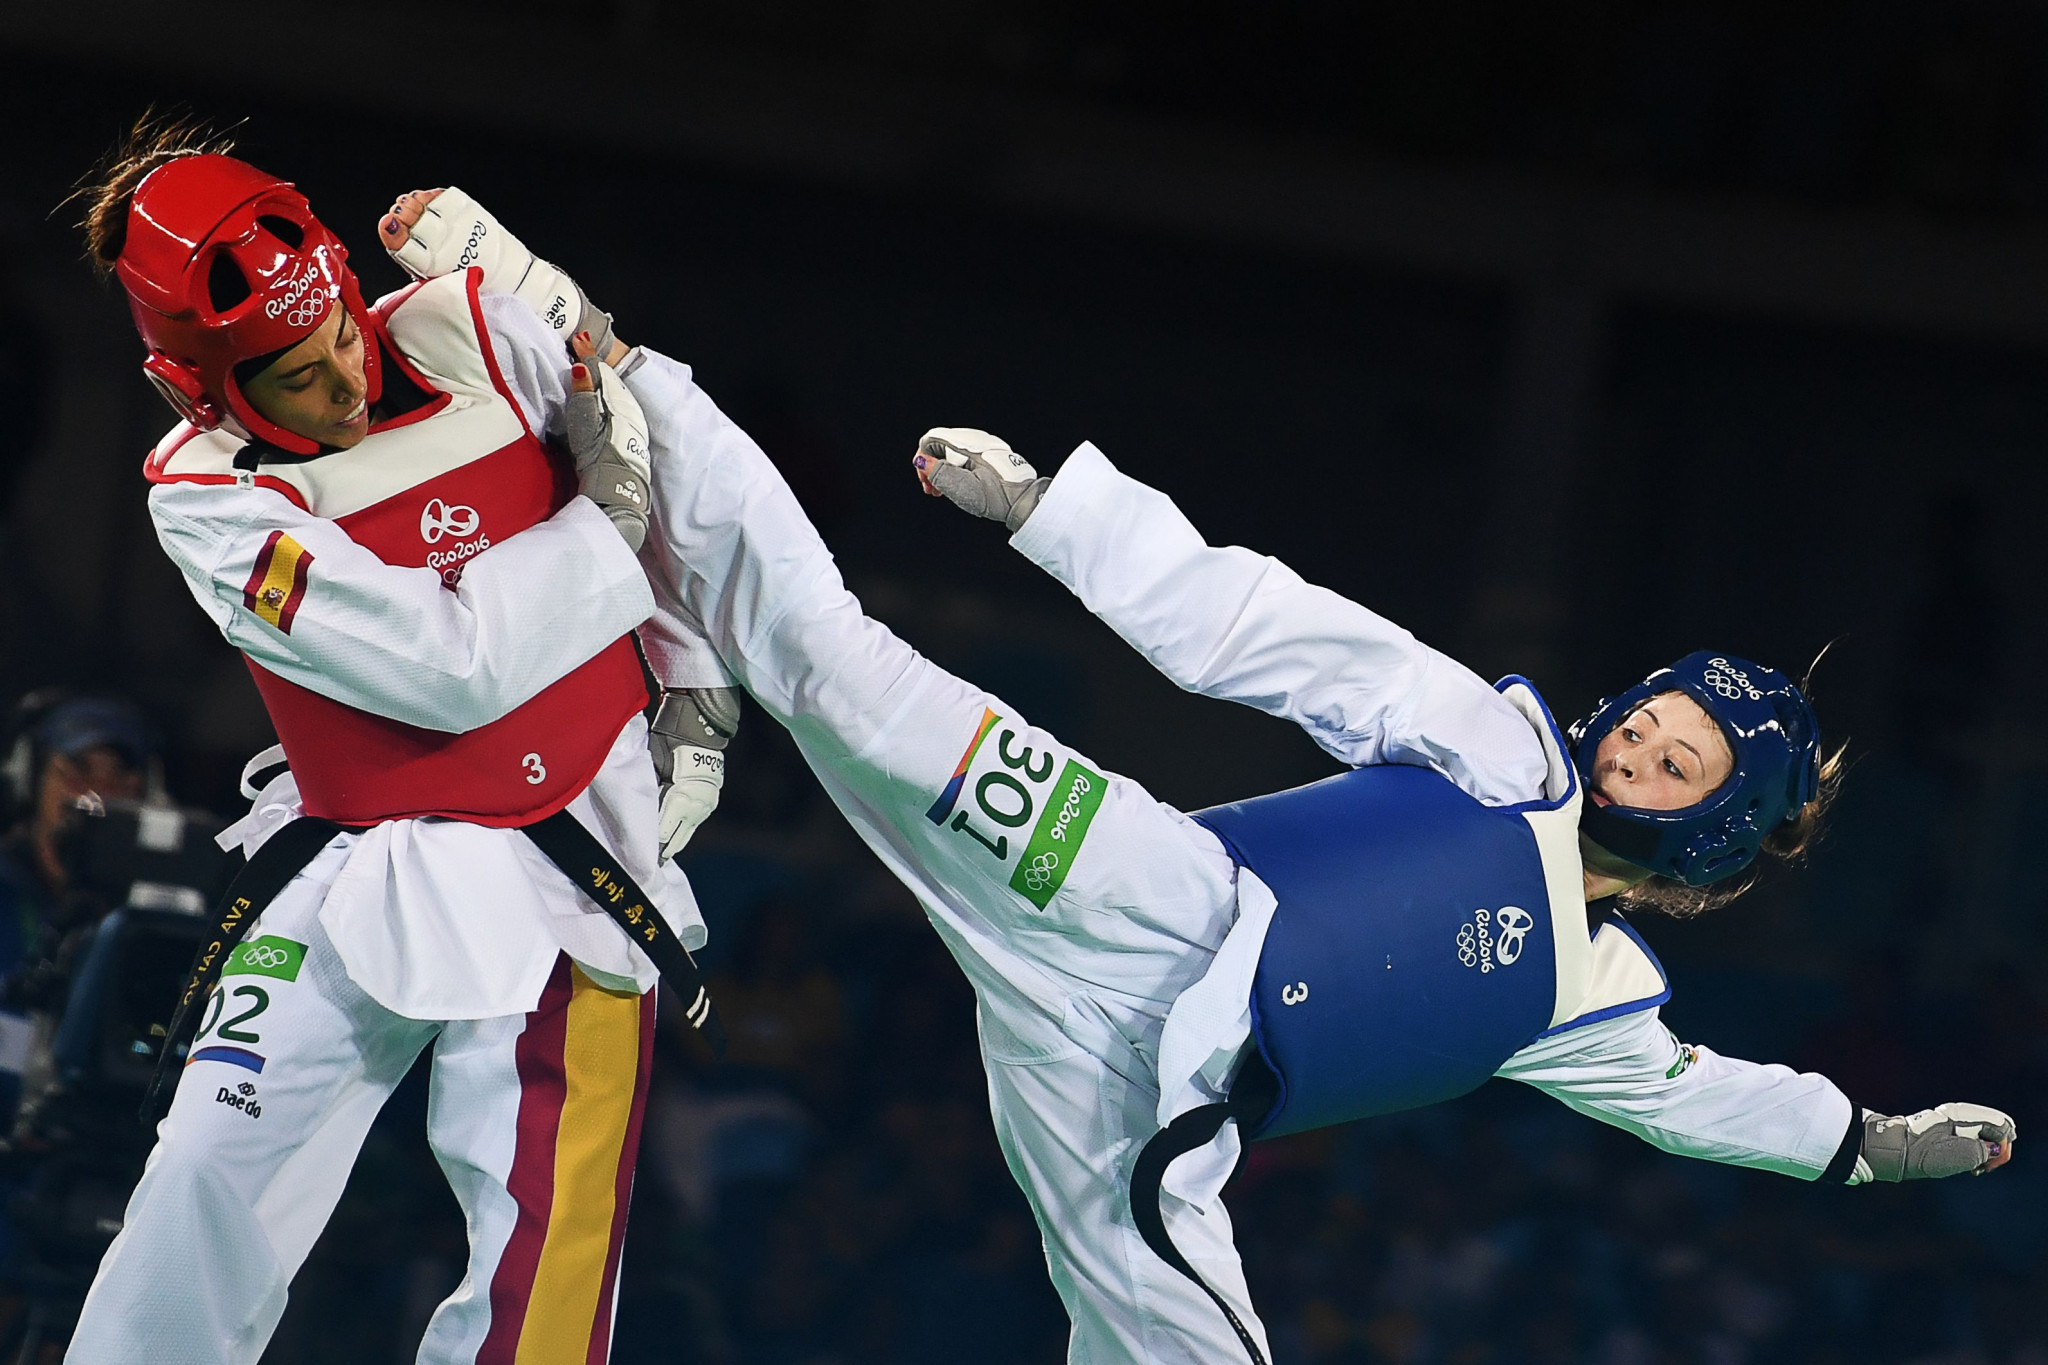 World Taekwondo Europe aims to provide the best climate for its athletes to reach their ultimate goal; winning gold medals at the Olympic Games ©Getty Images